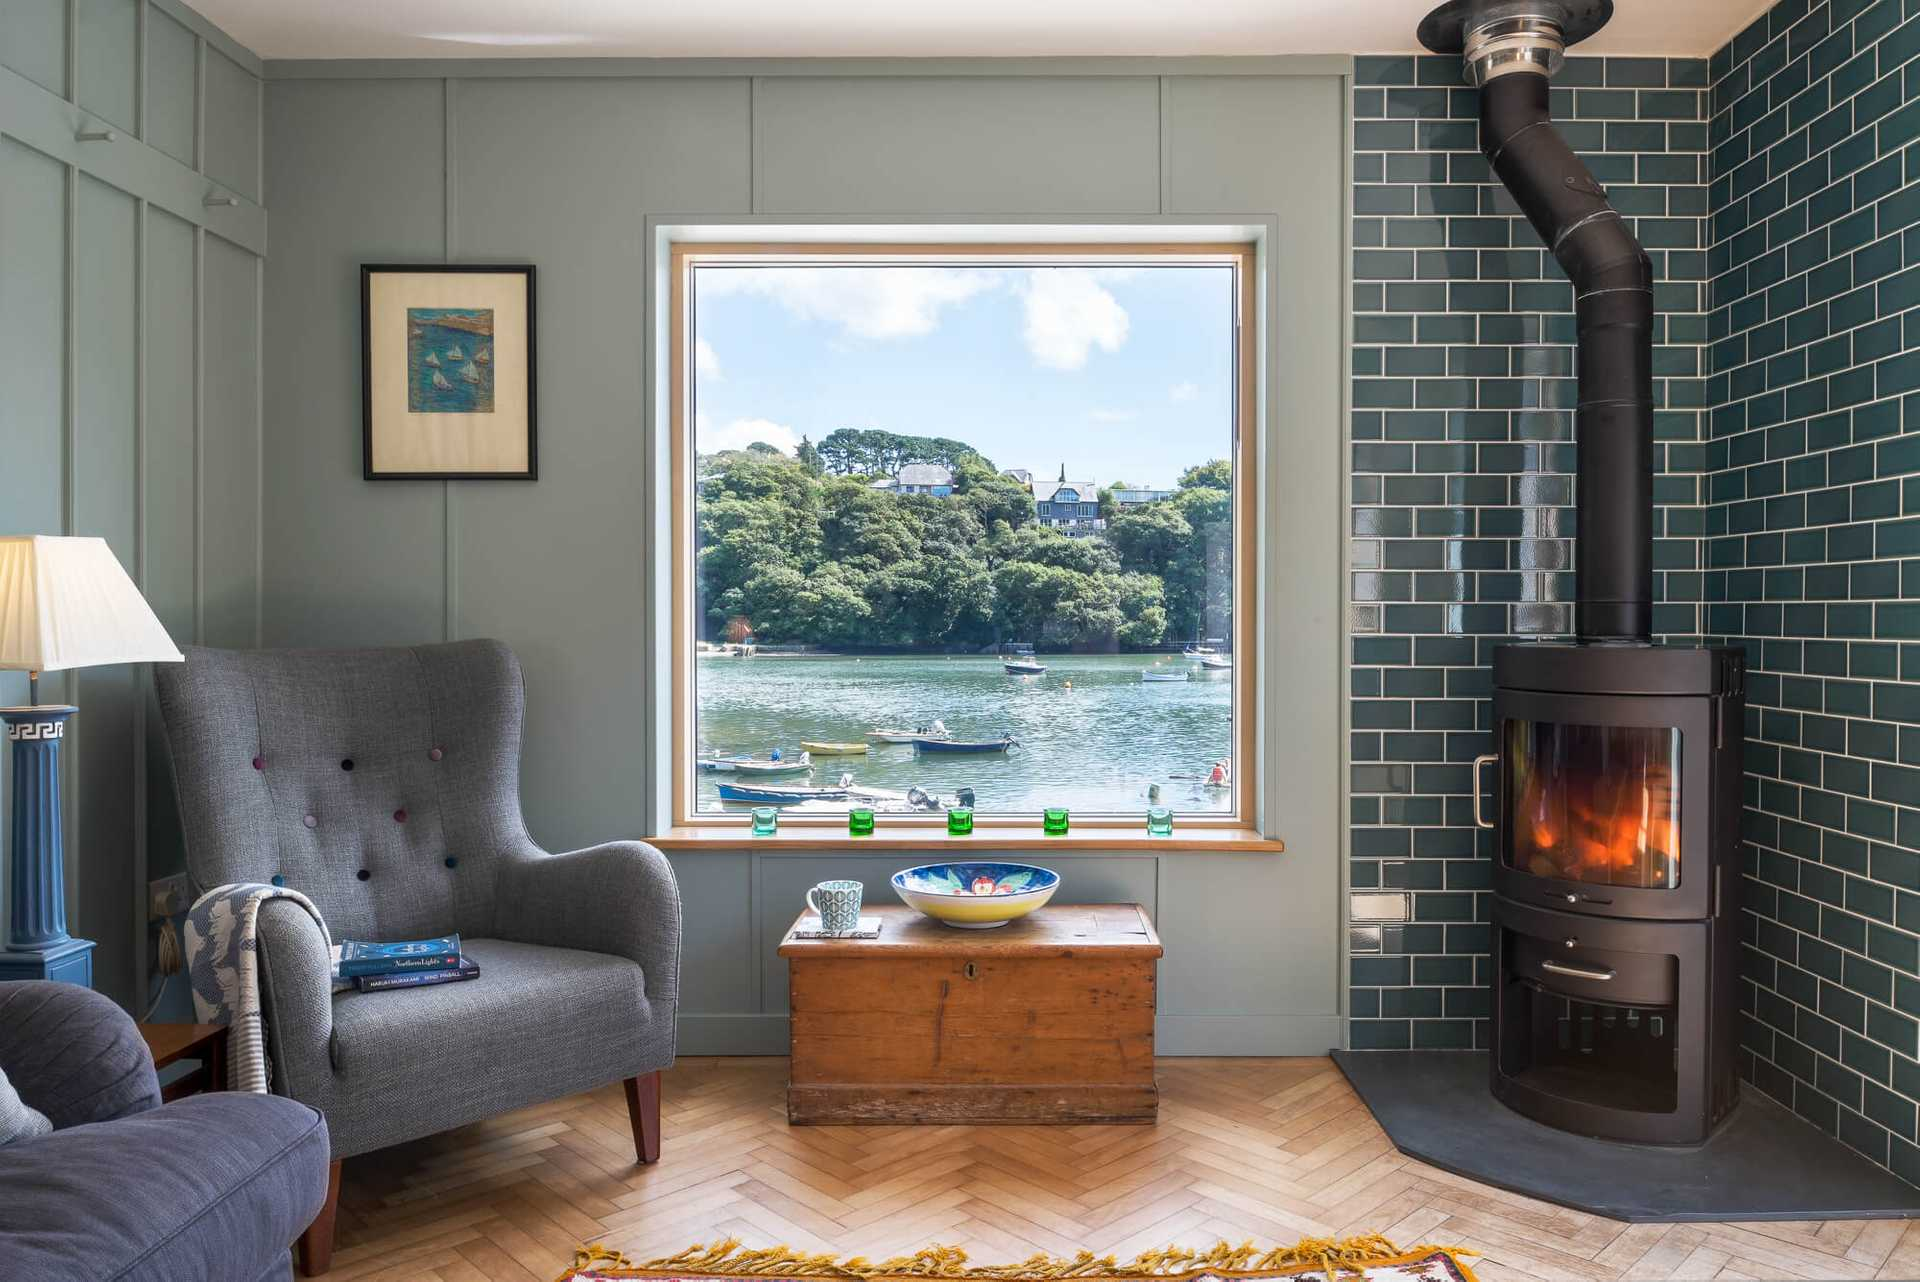 Sea view holiday home overlooking the Helford River in Falmouth